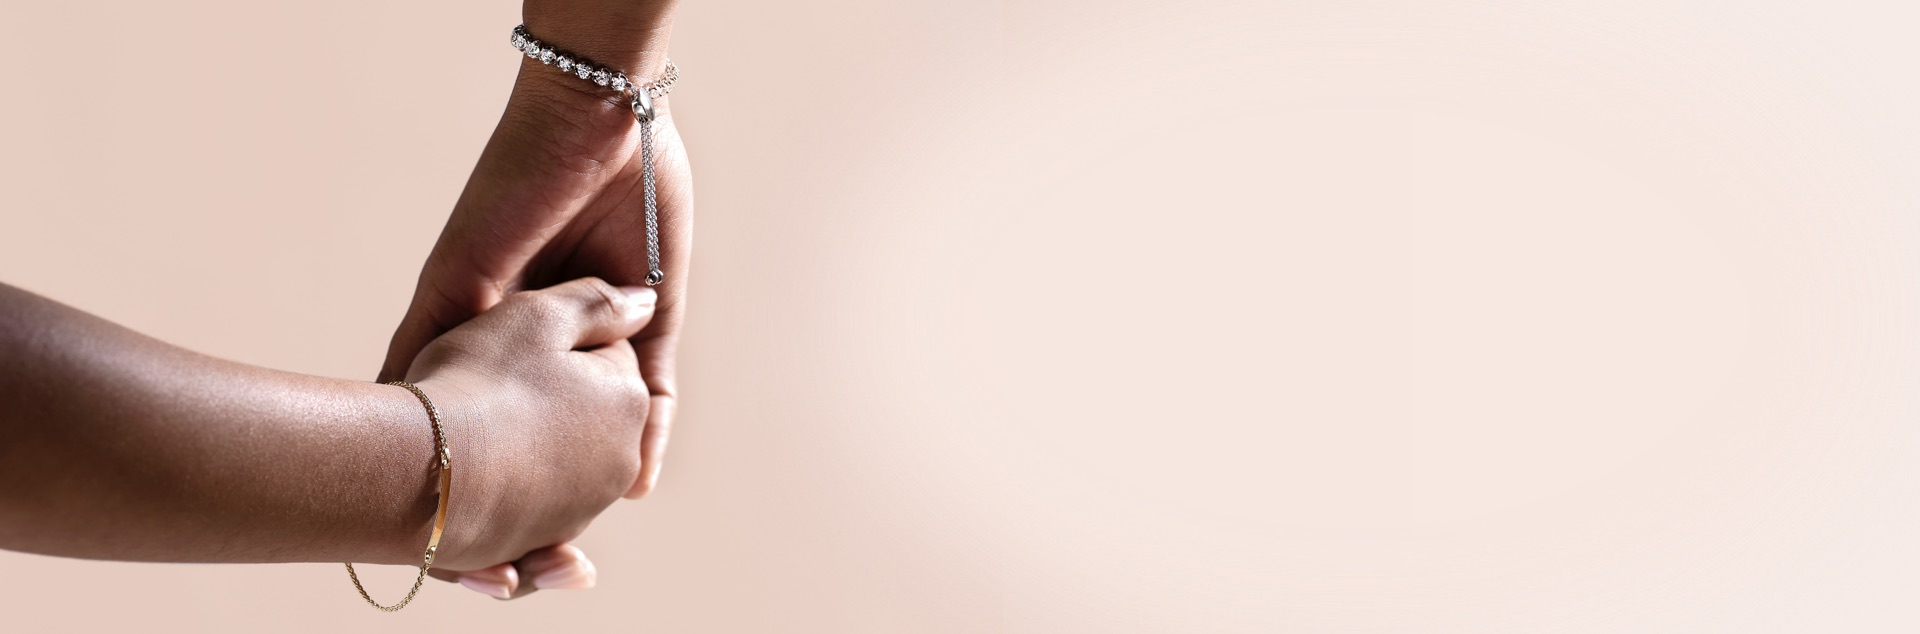 Mother and child holding hands wearing bracelets from Jared with a soft pink background.